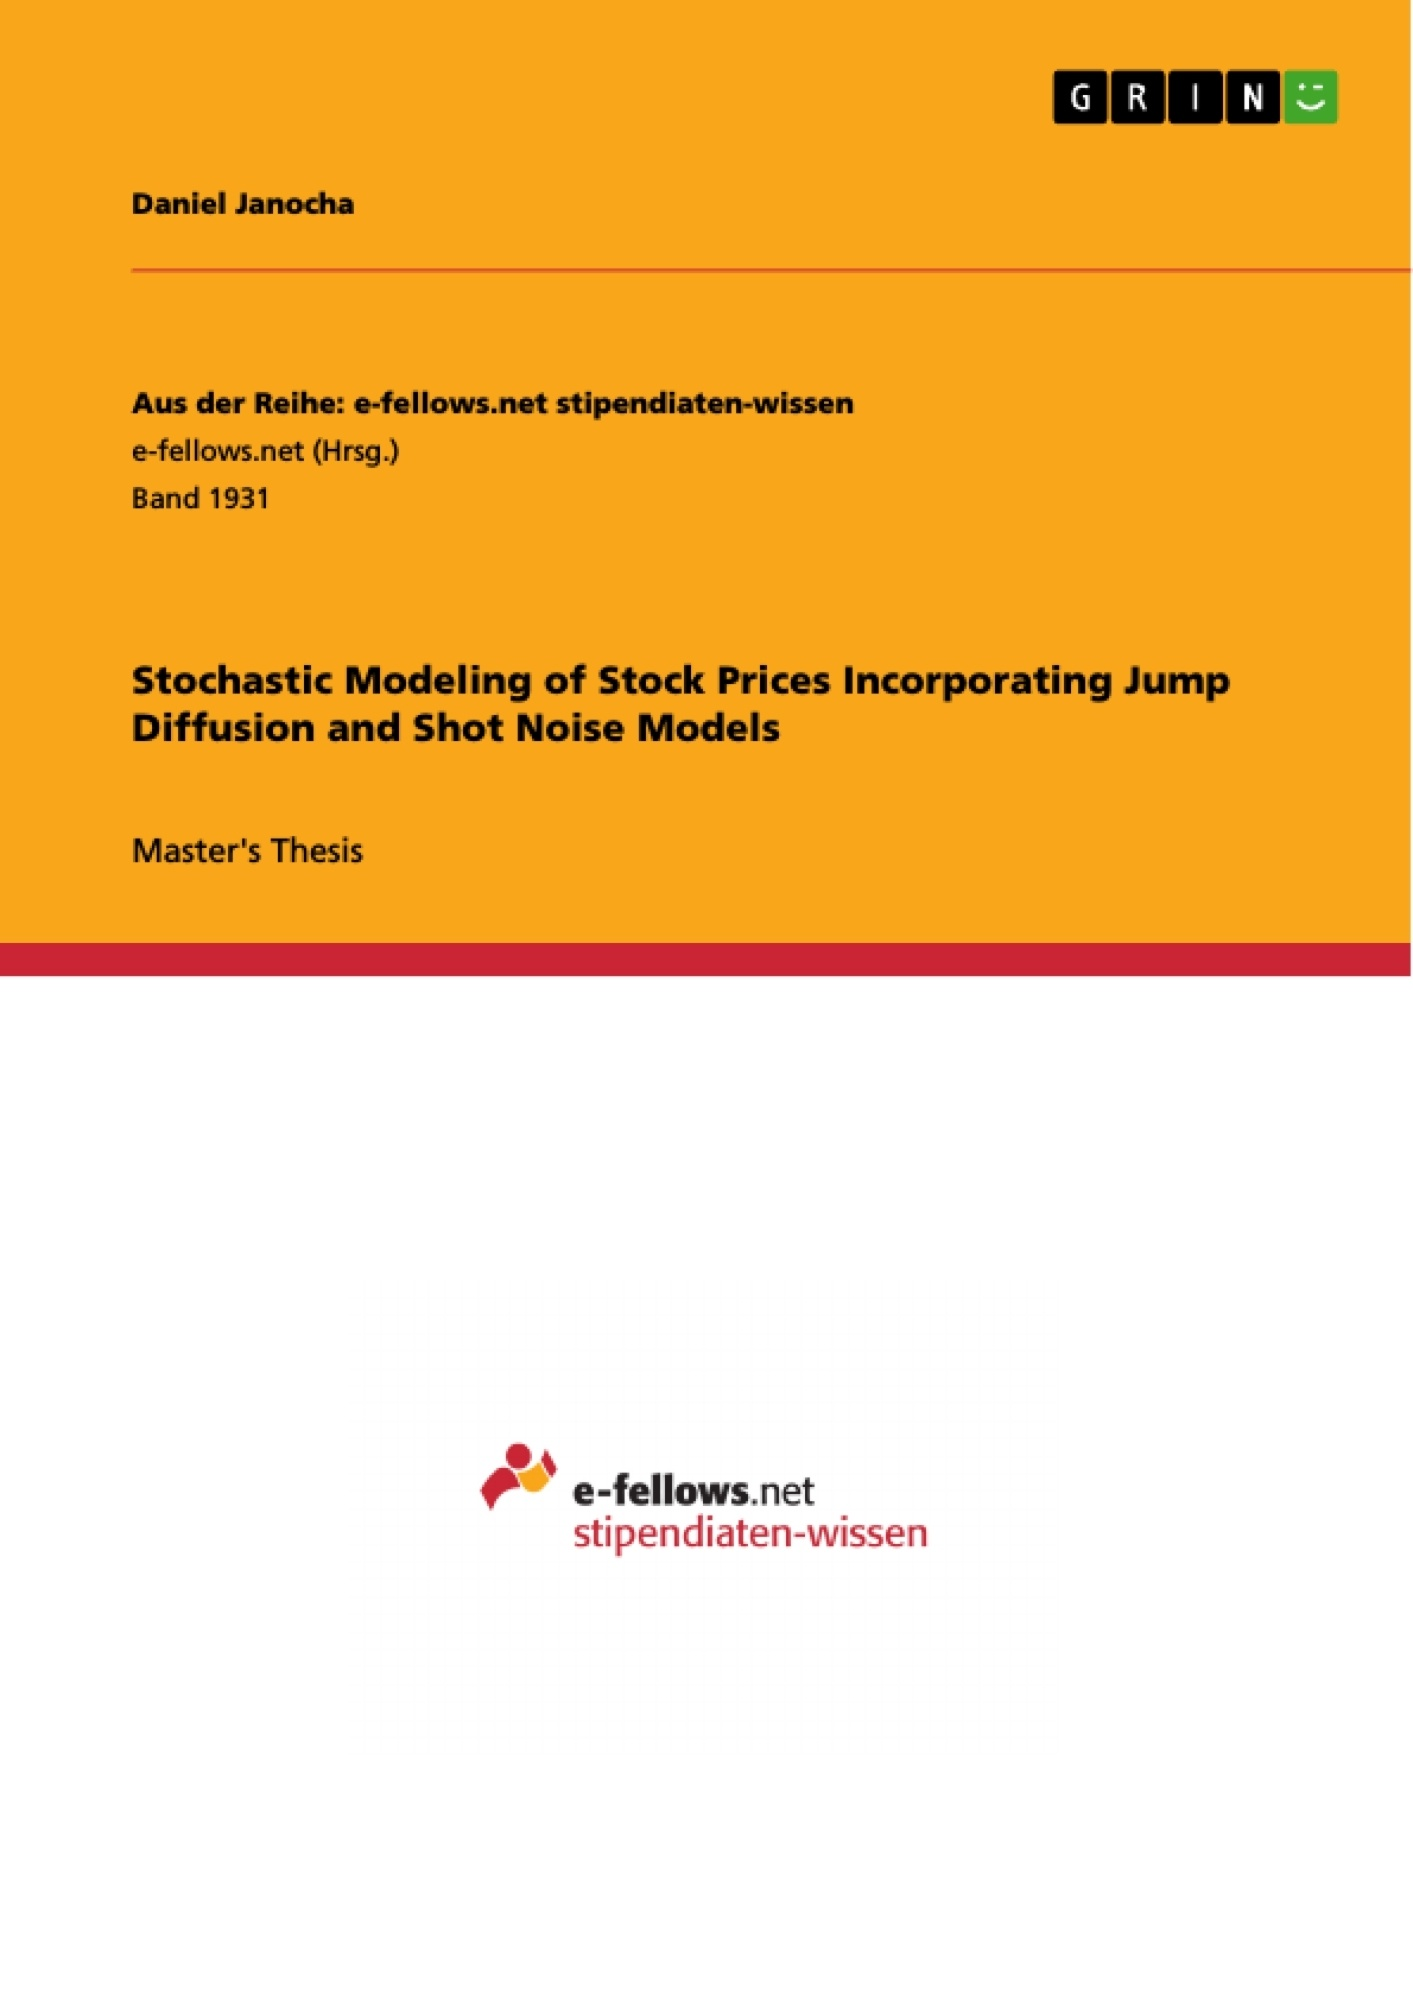 Title: Stochastic Modeling of Stock Prices Incorporating Jump Diffusion and Shot Noise Models